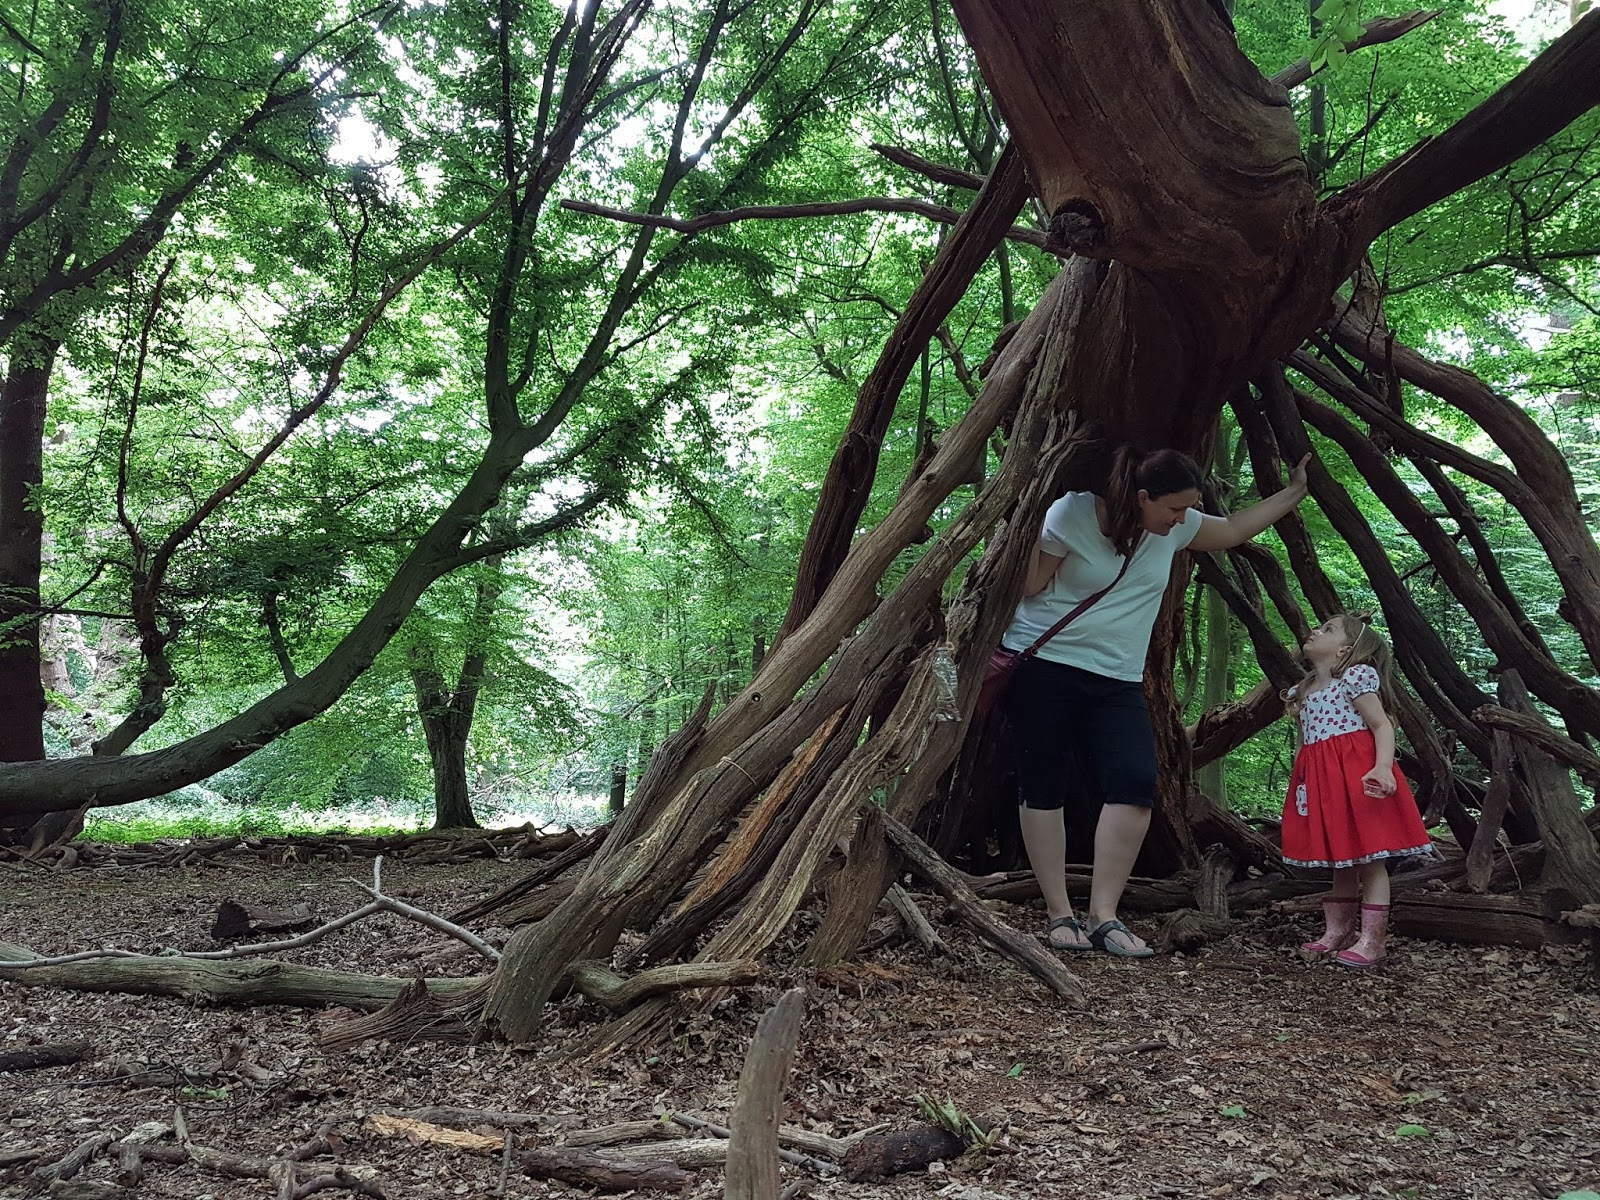 mum and daughter at epping forest tree branch hut